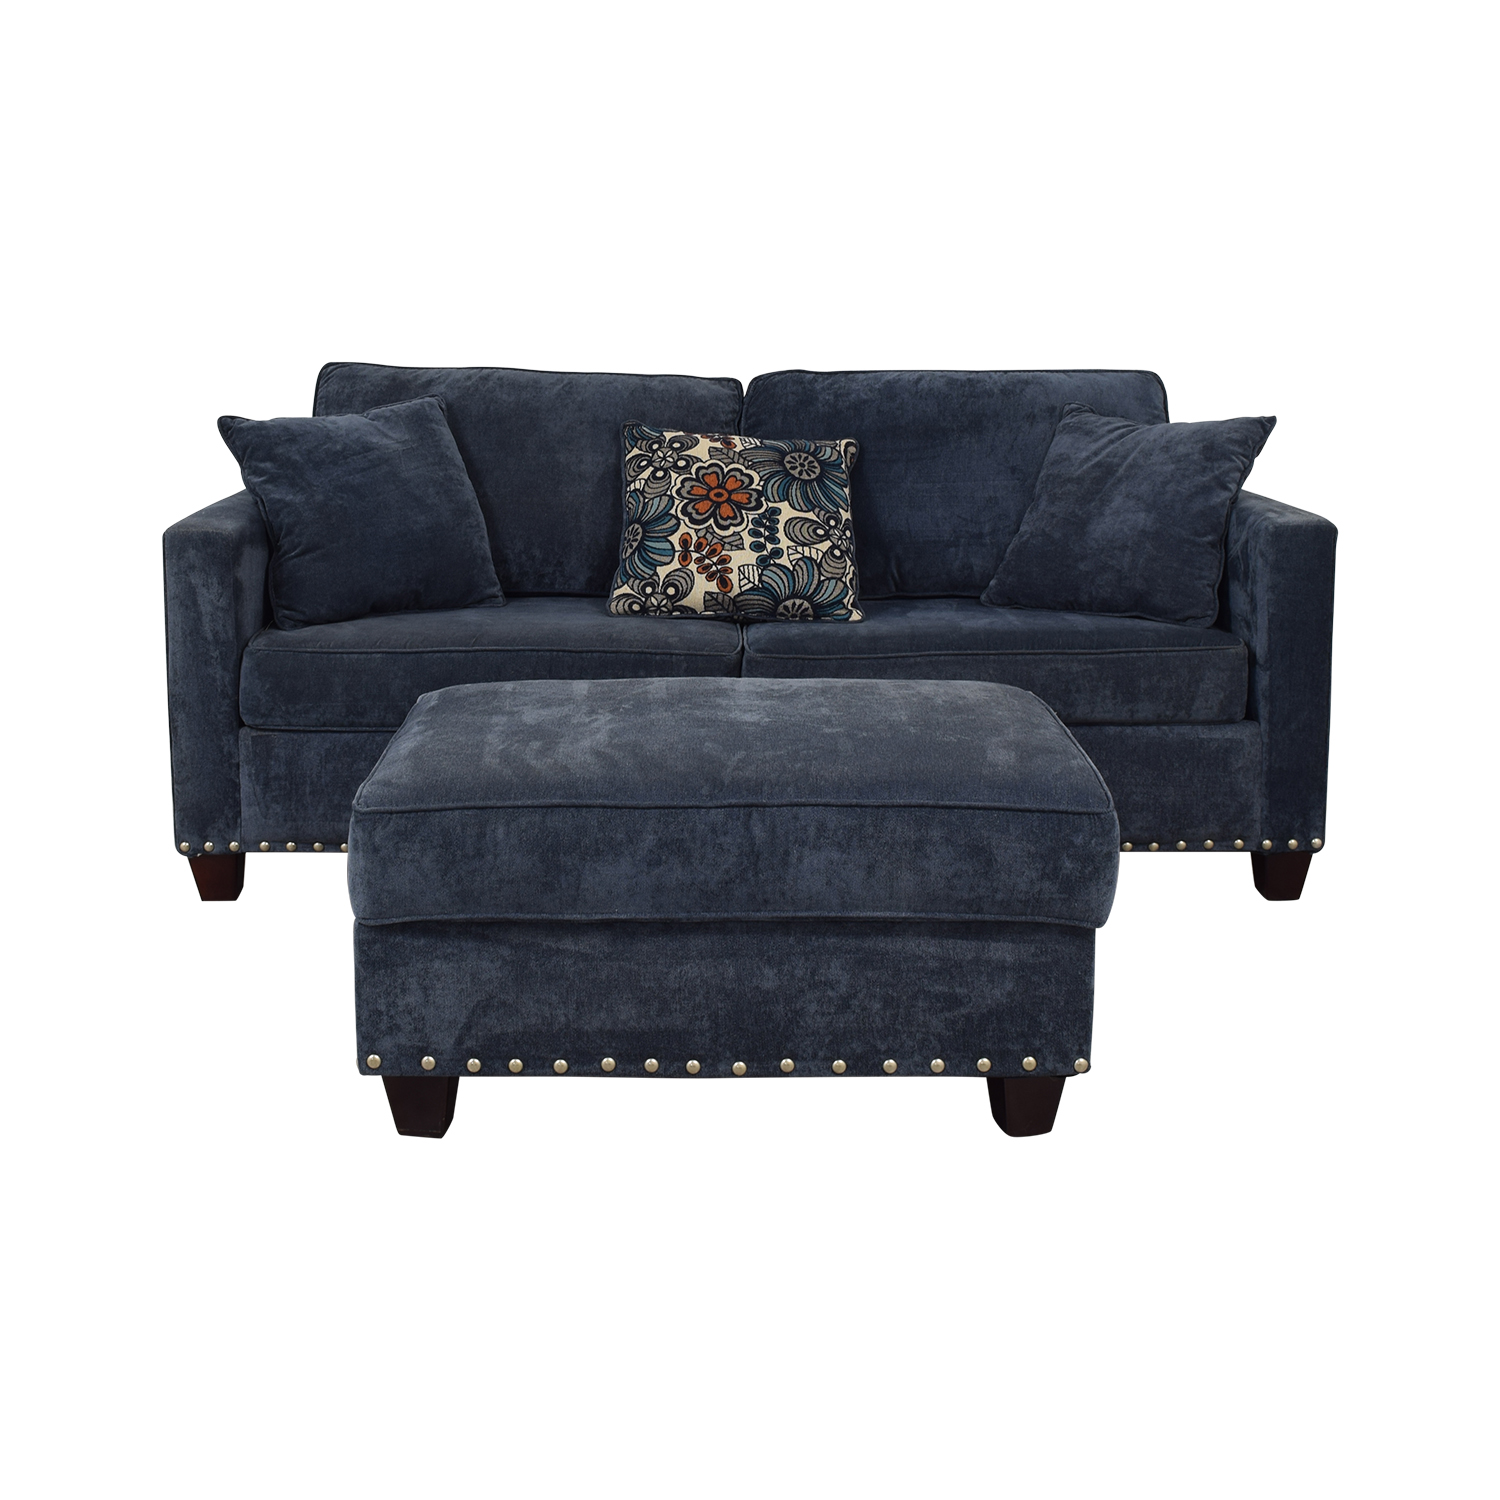 Bob's Discount Furniture Bob's Discount Furniture Melanie Blue Nailhead Sofa and Ottoman used